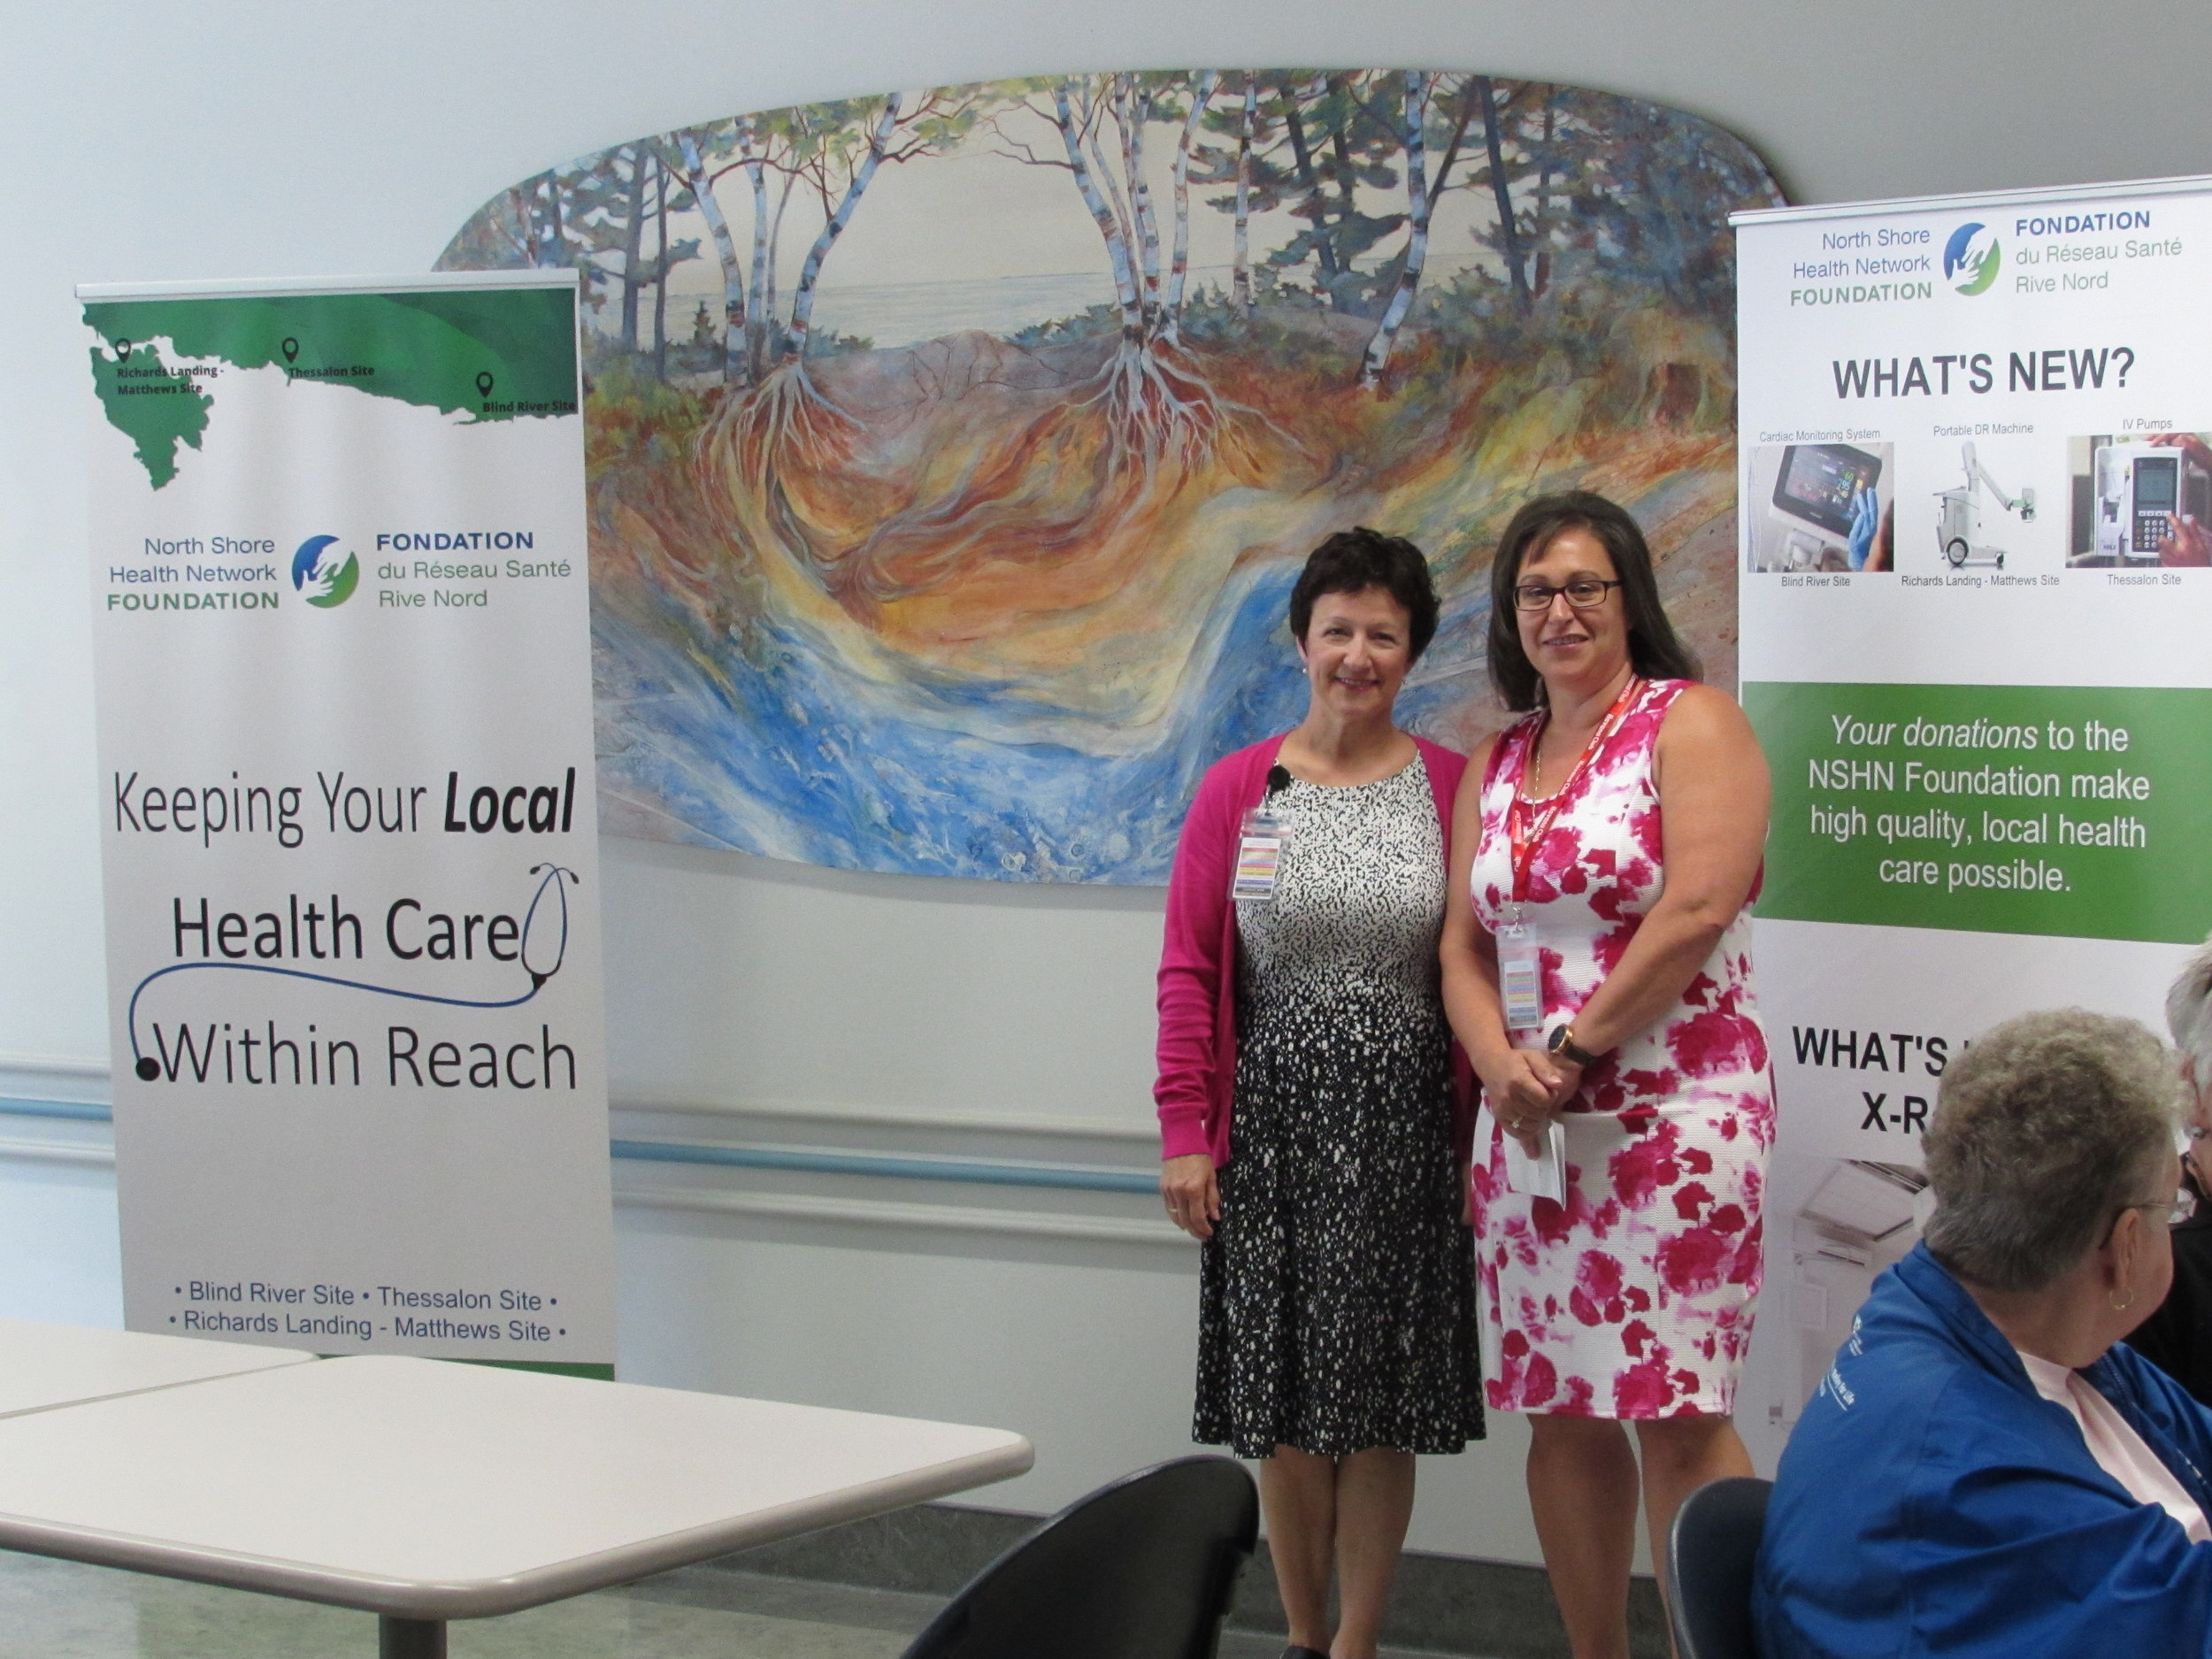 Laurie Kendrick (NSHN Foundation Coordinator) and Donna Orlando (NSHN Foundation Chair) address donors at the NSHN Blind River Site on Sunday, June 24, 2018